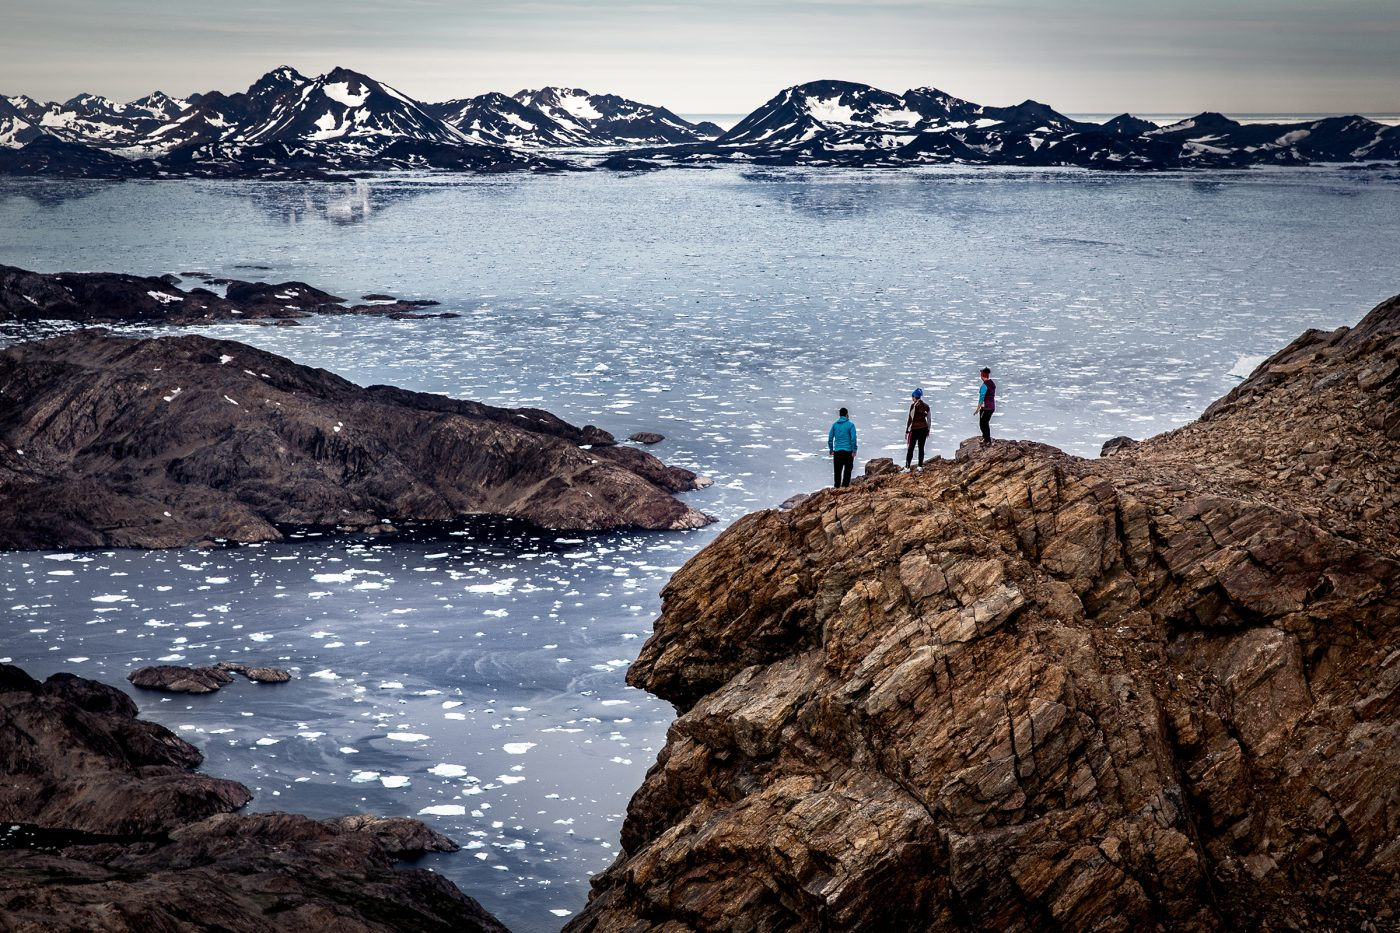 Hikers on Sømandsfjeldet near Tasiilaq in East Greenland. Photo by Mads Pihl